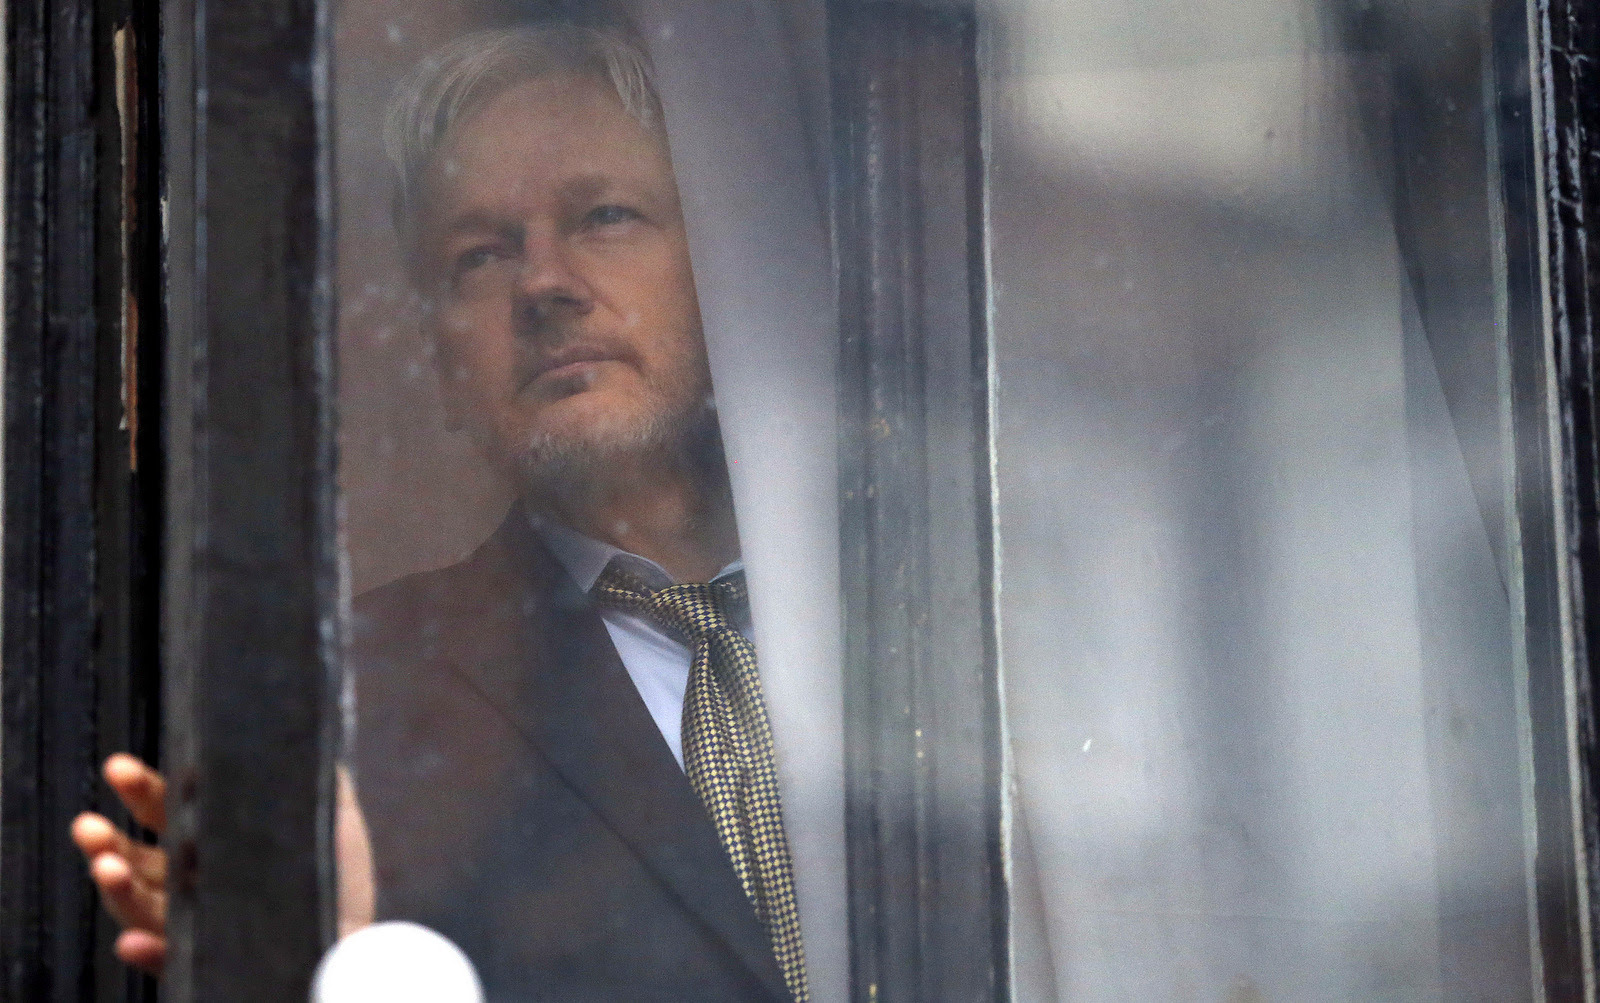 WikiLeaks founder Julian Assange walks onto the balcony of the Ecuadorean Embassy to addresses waiting supporters and media in London, Friday, Feb. 5, 2016. (AP/Frank Augstein)